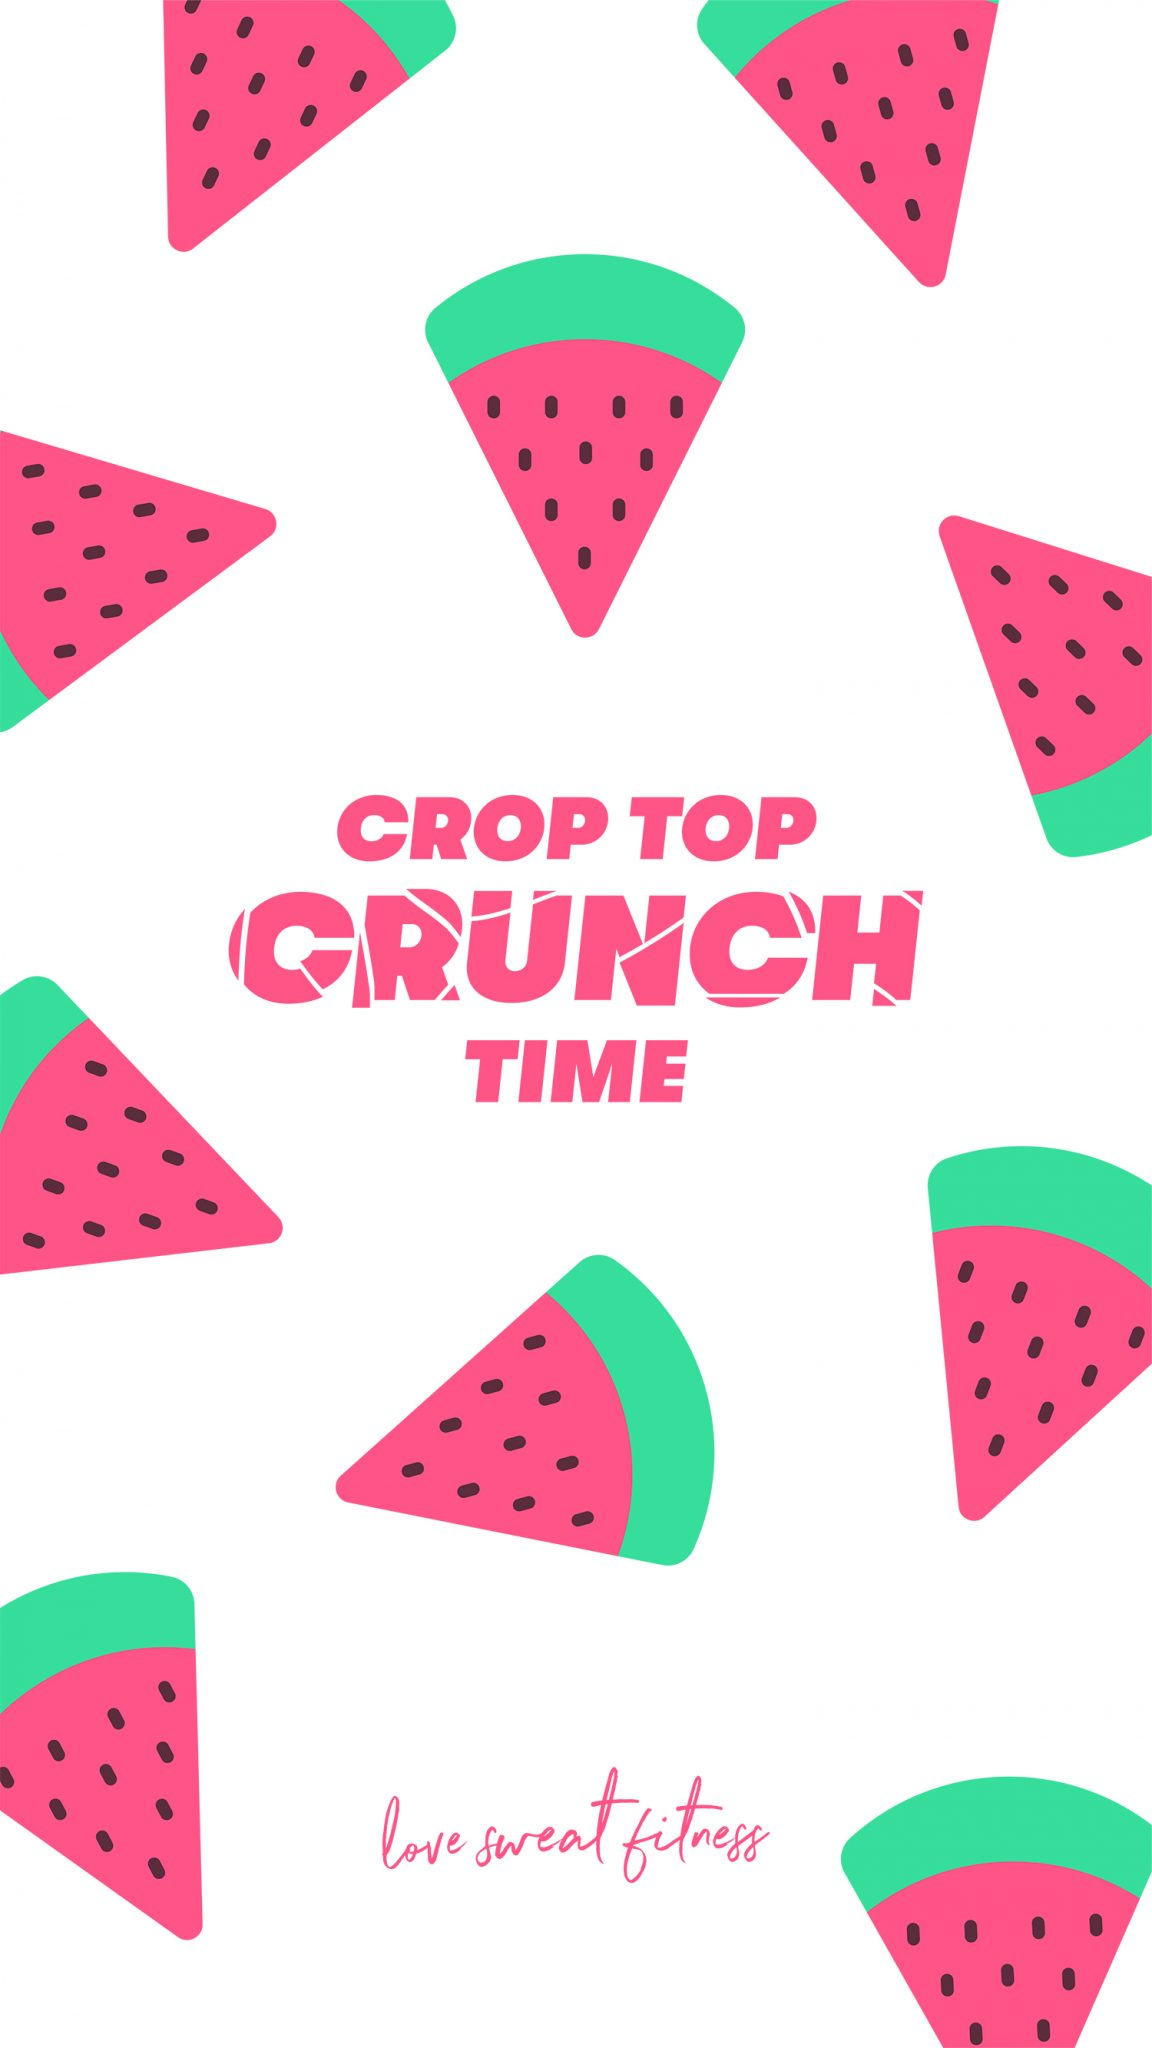 Crop Top Crunch Time Phone Wallpapers - Love Sweat Fitness